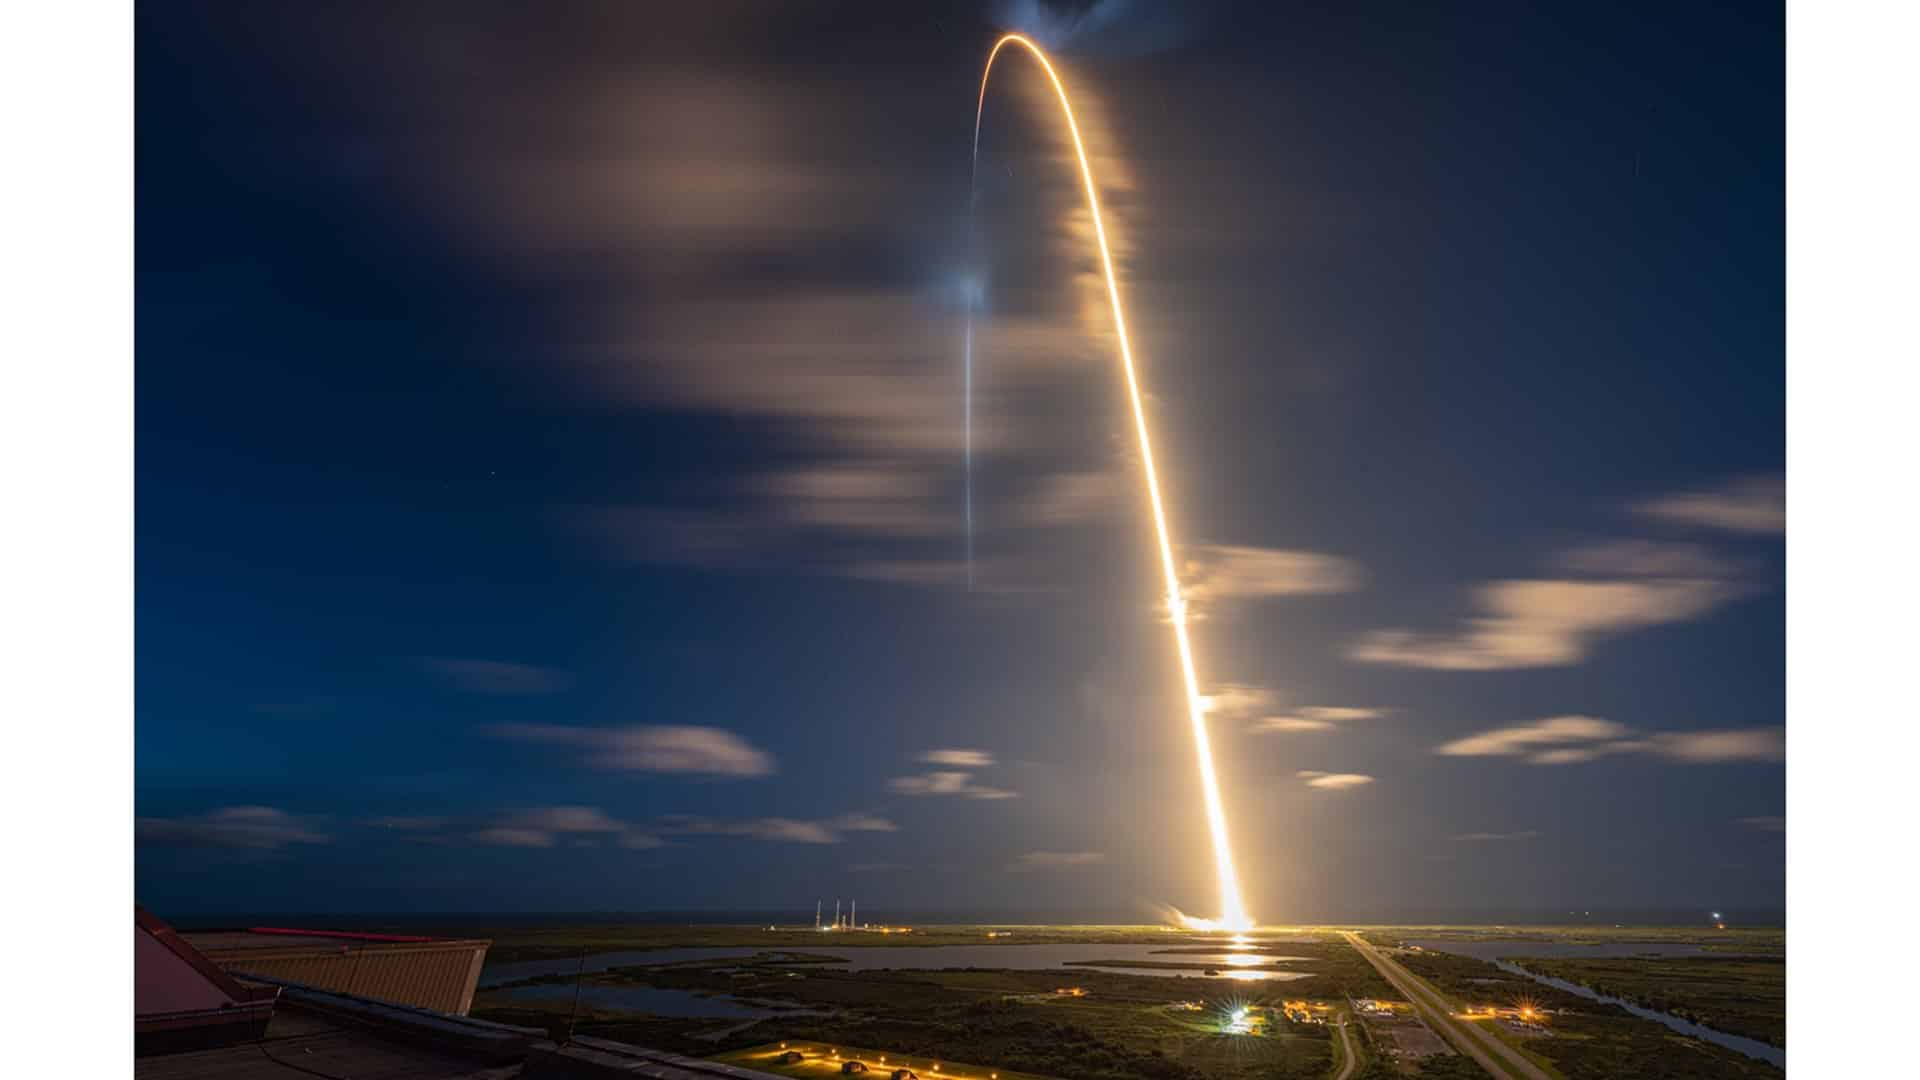 Inspiration4 Mission: SpaceX's first all-civilian crew launched into orbit